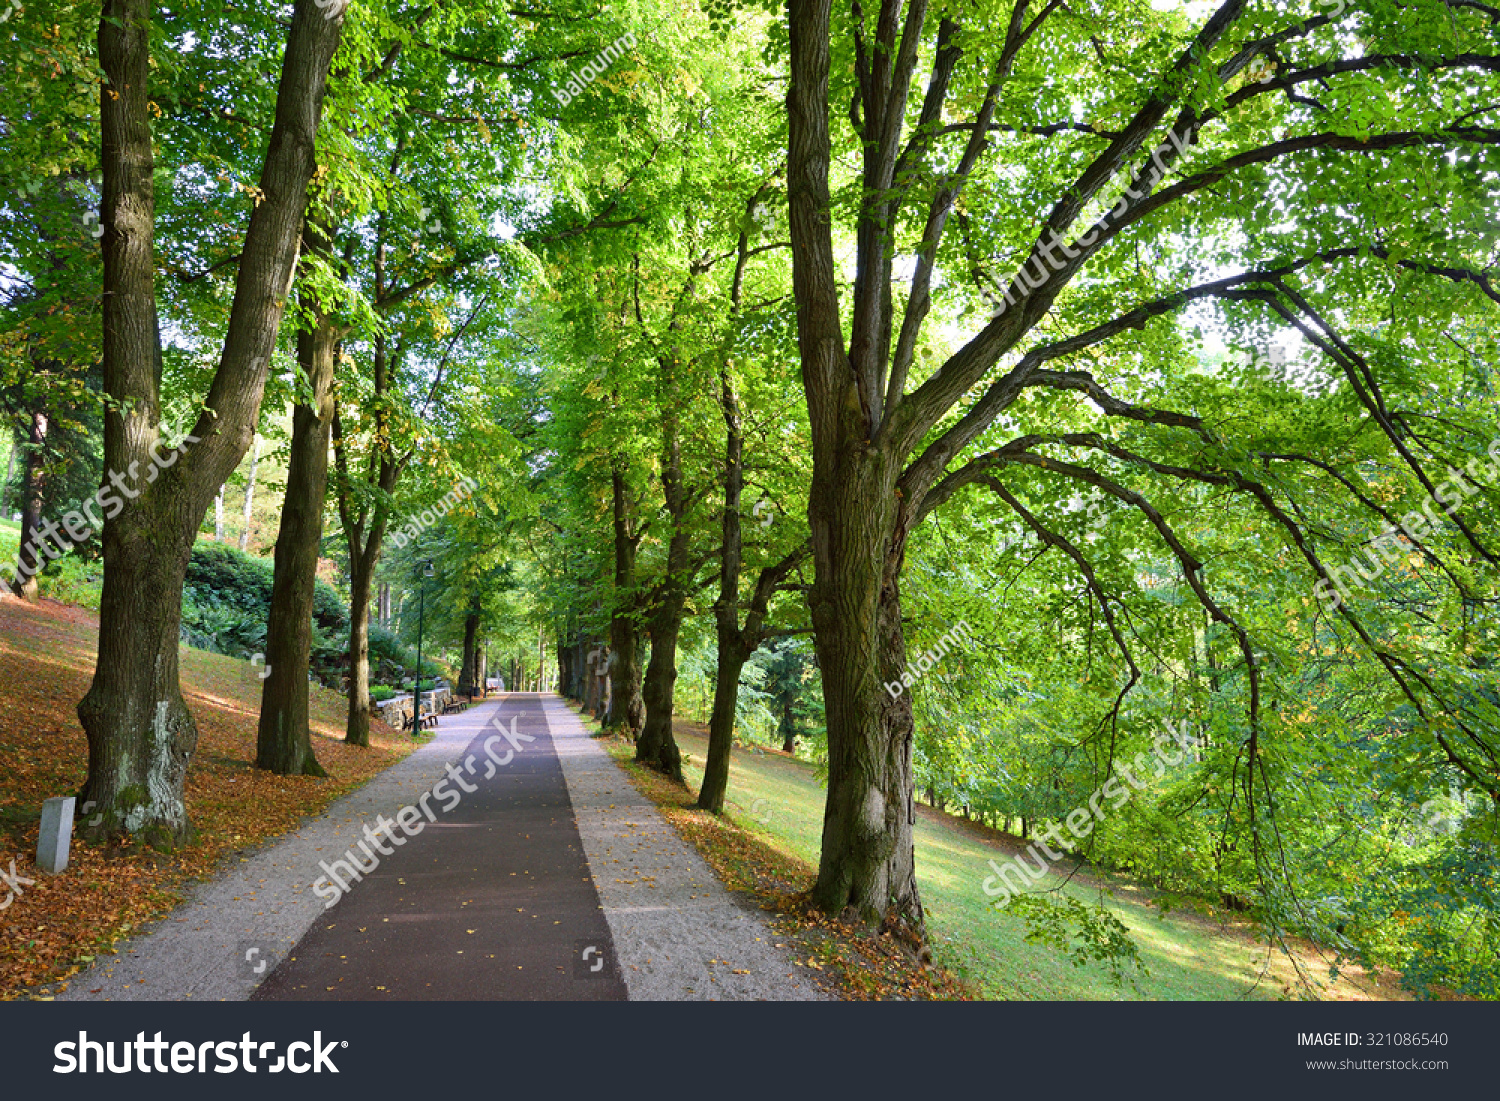 Long Alley Green Trees Straight Road Stock Photo 321086540 ... for Straight Road With Trees  568zmd